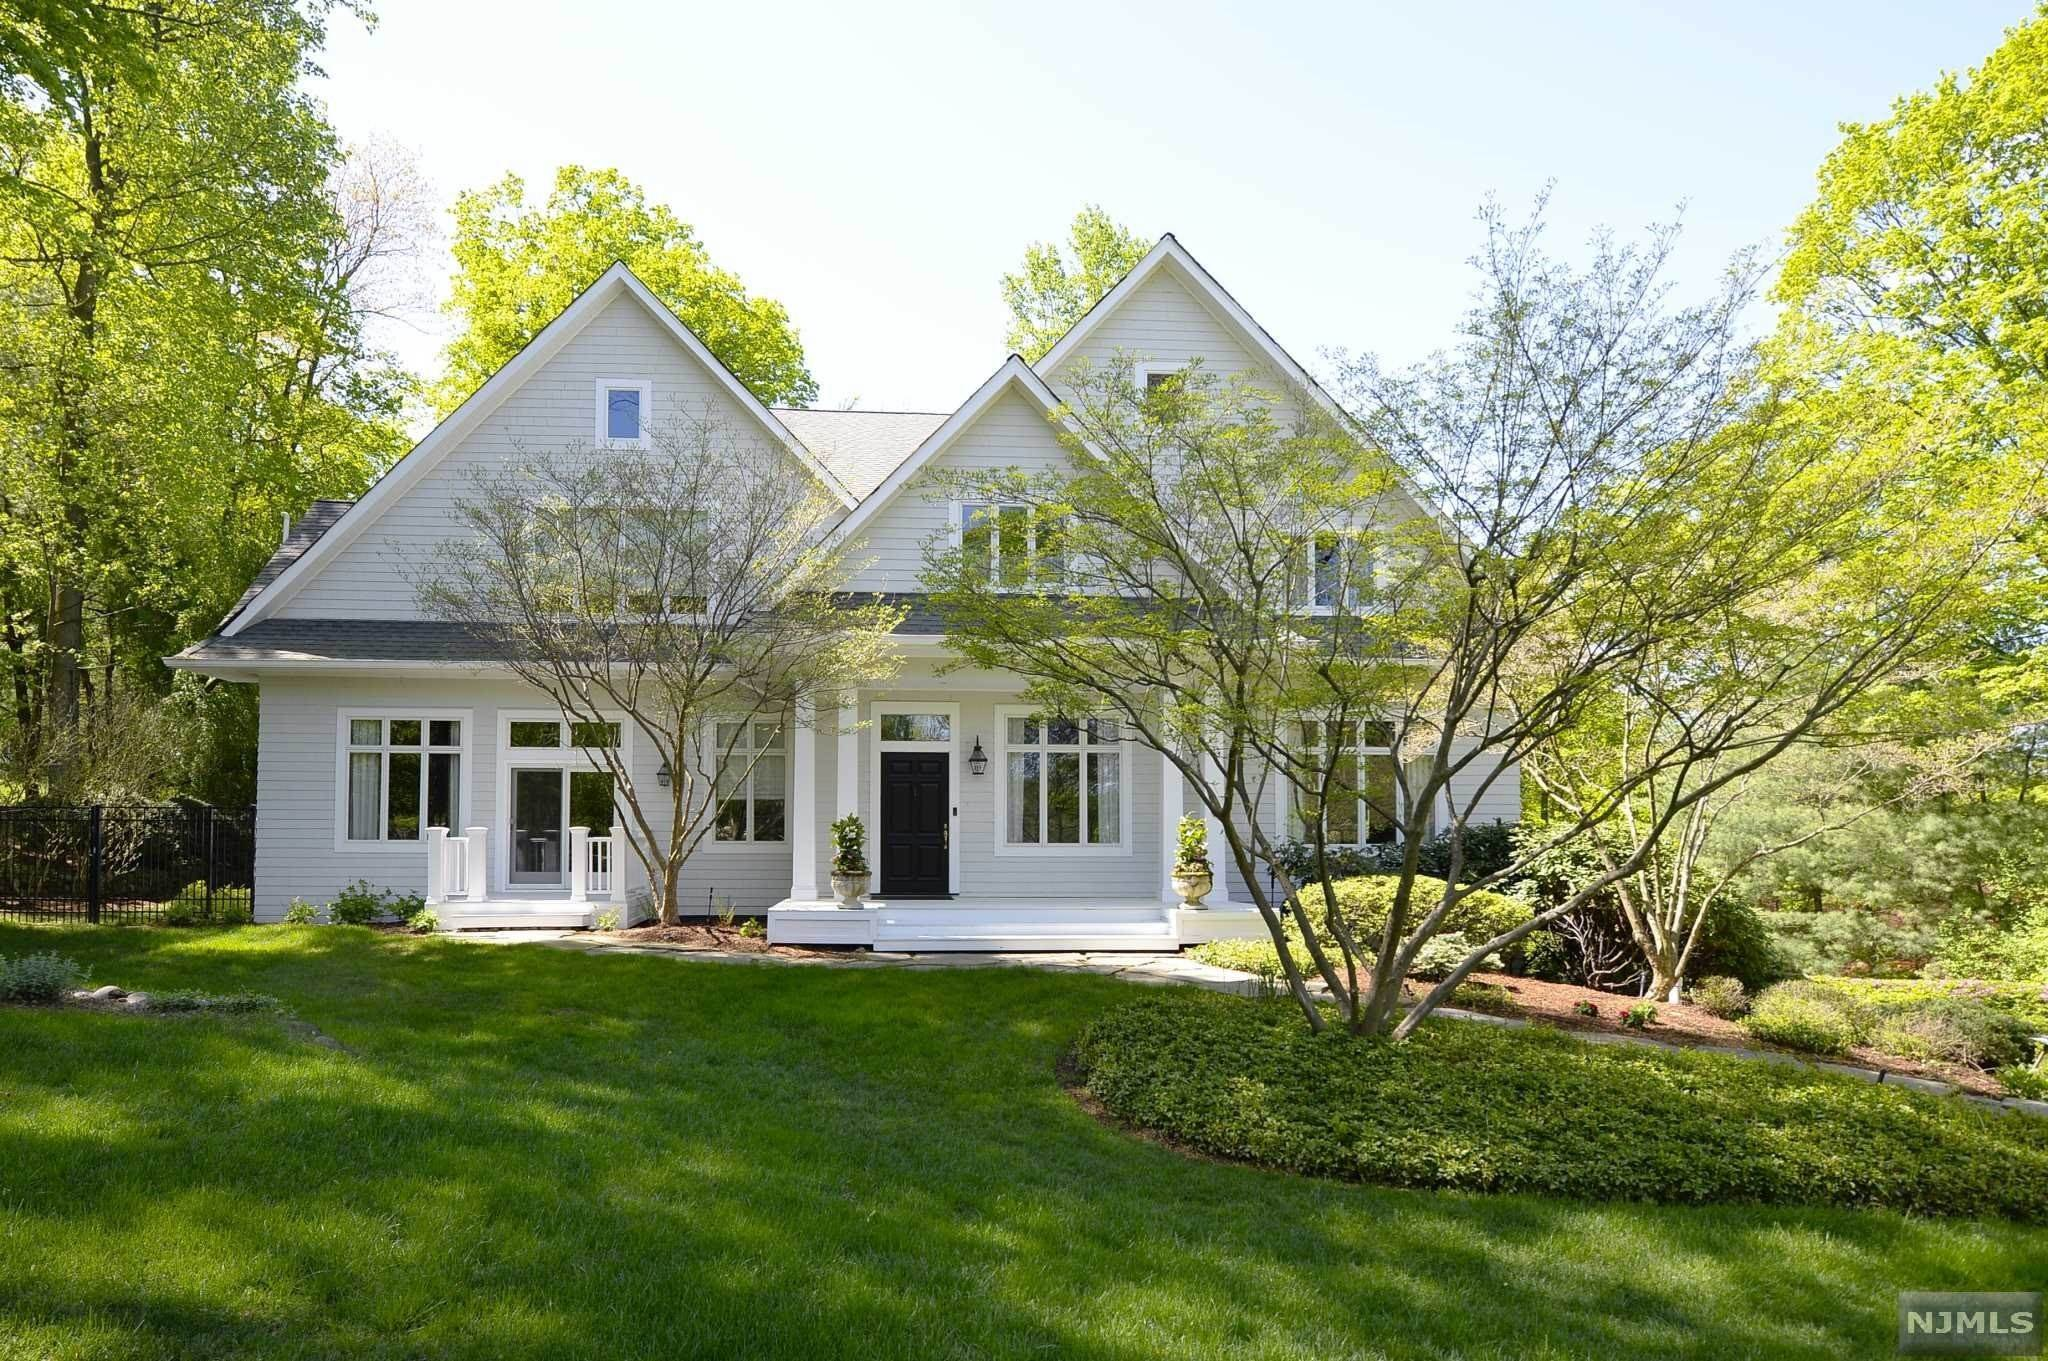 Single Family Home for Sale at 24 Locust Lane Saddle River, New Jersey, 07458 United States